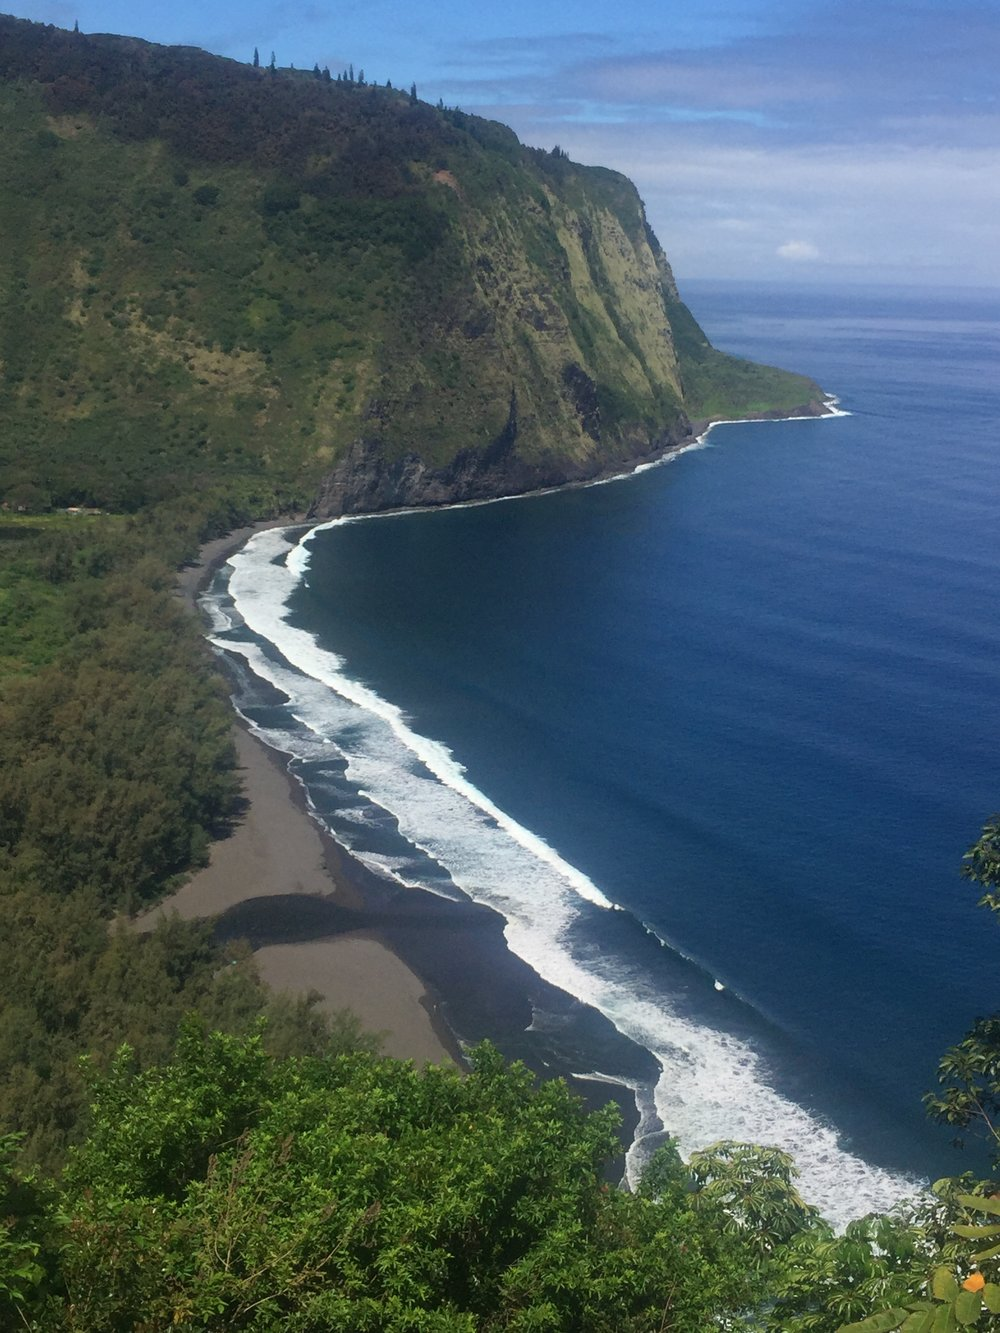 Where we hiked down to Waipio Valley, some very kind soul drove us up the 1,200 foot climb.